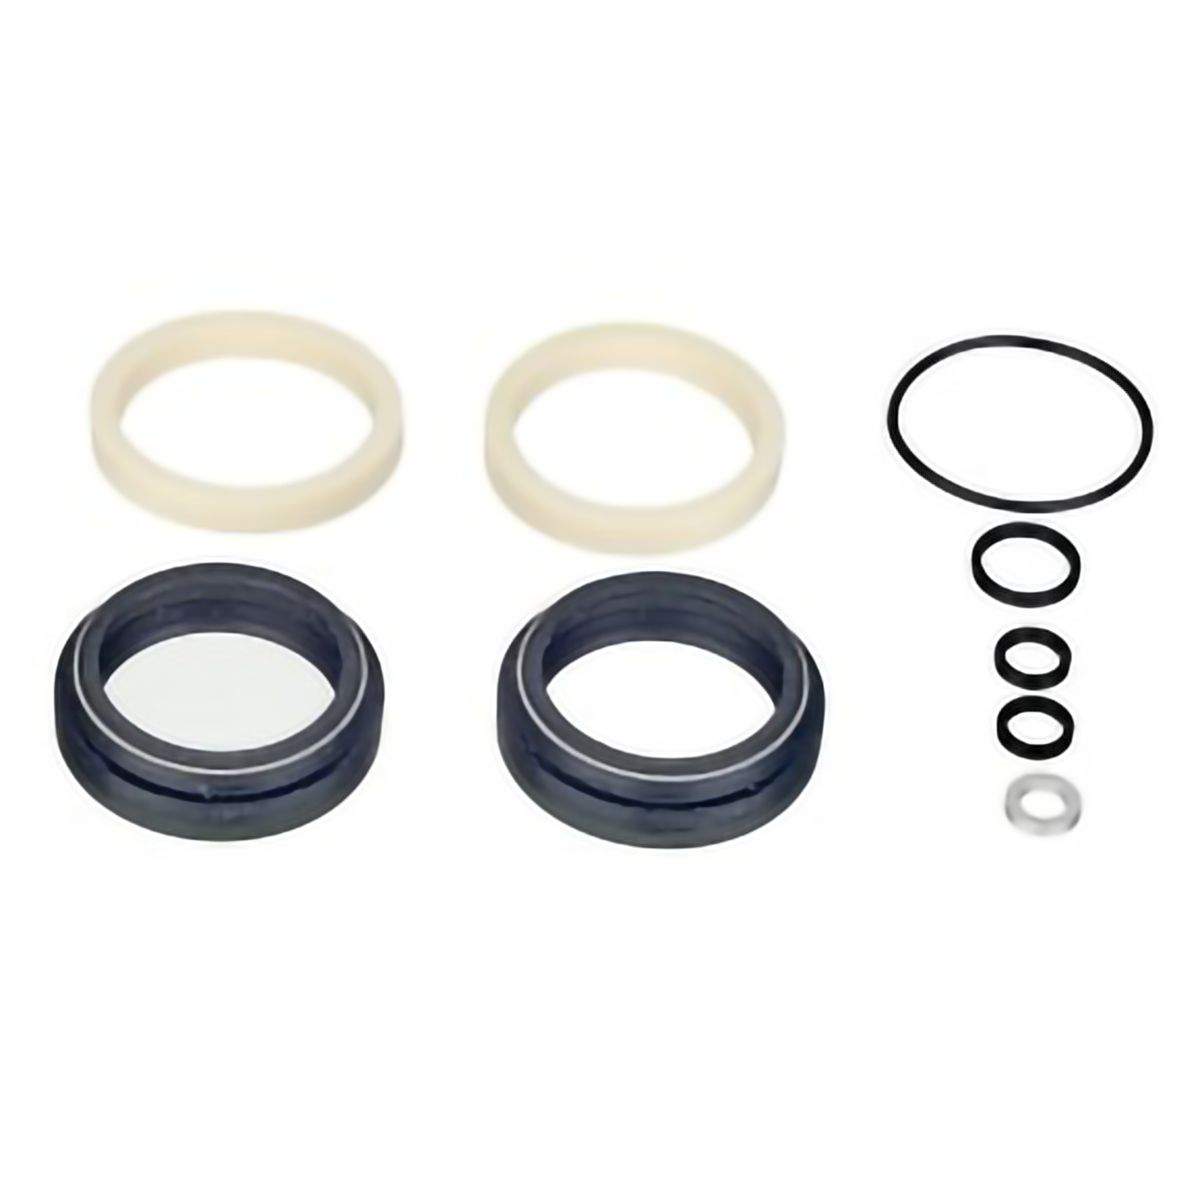 Dust Wiper seal kit for 36er (without flange)